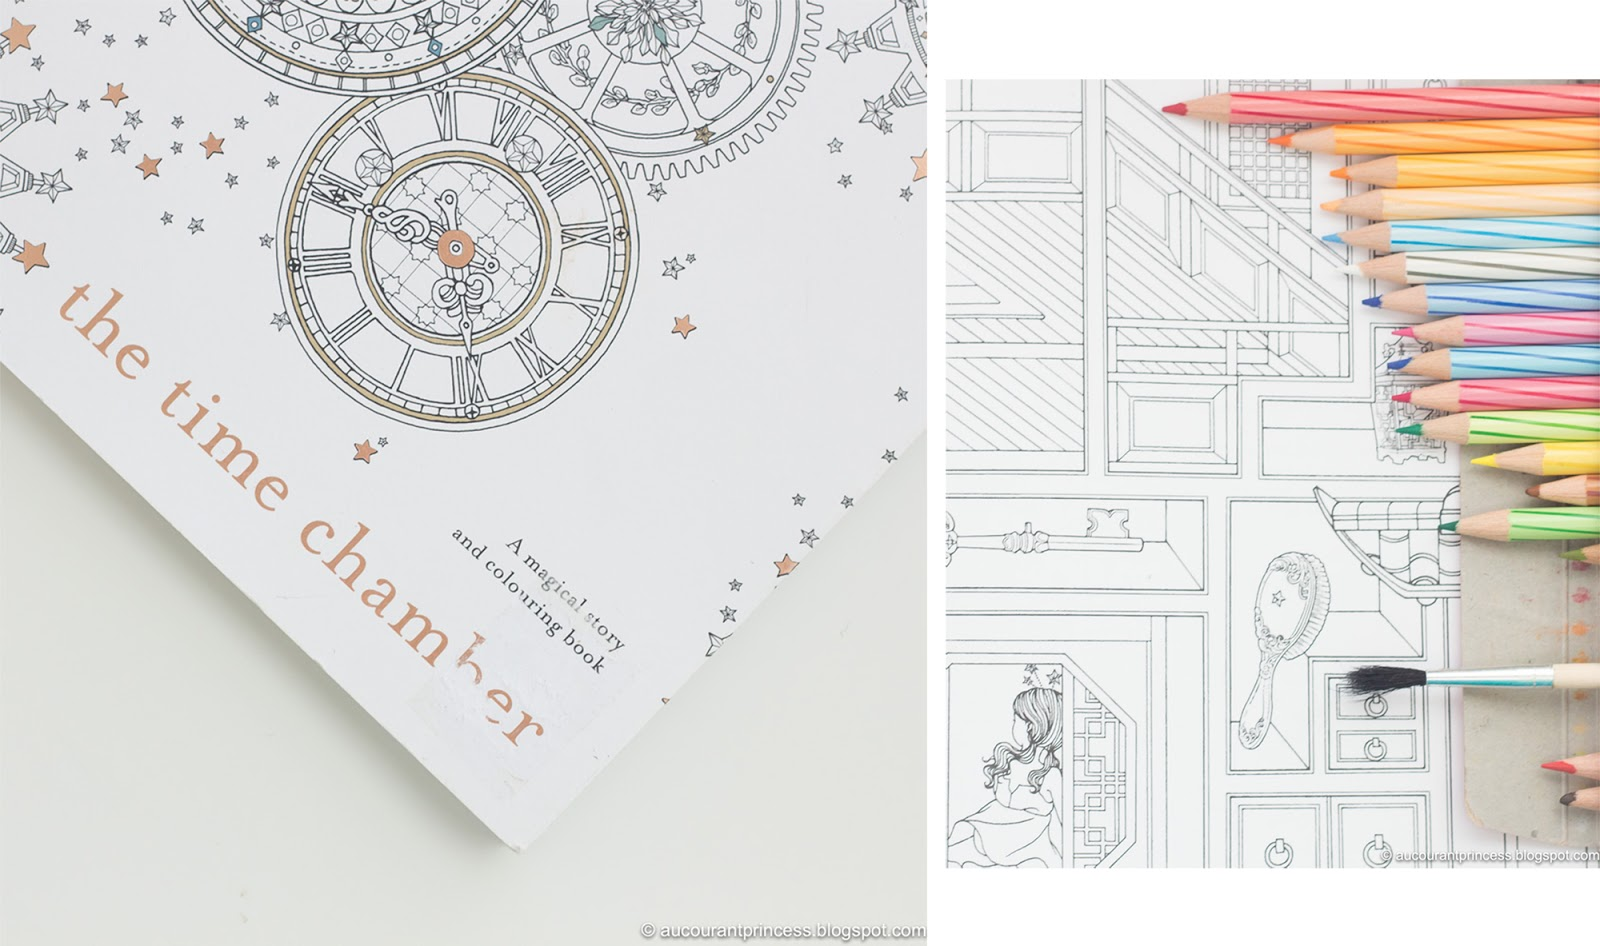 The Time Chamber Coloring Book by Daria Song